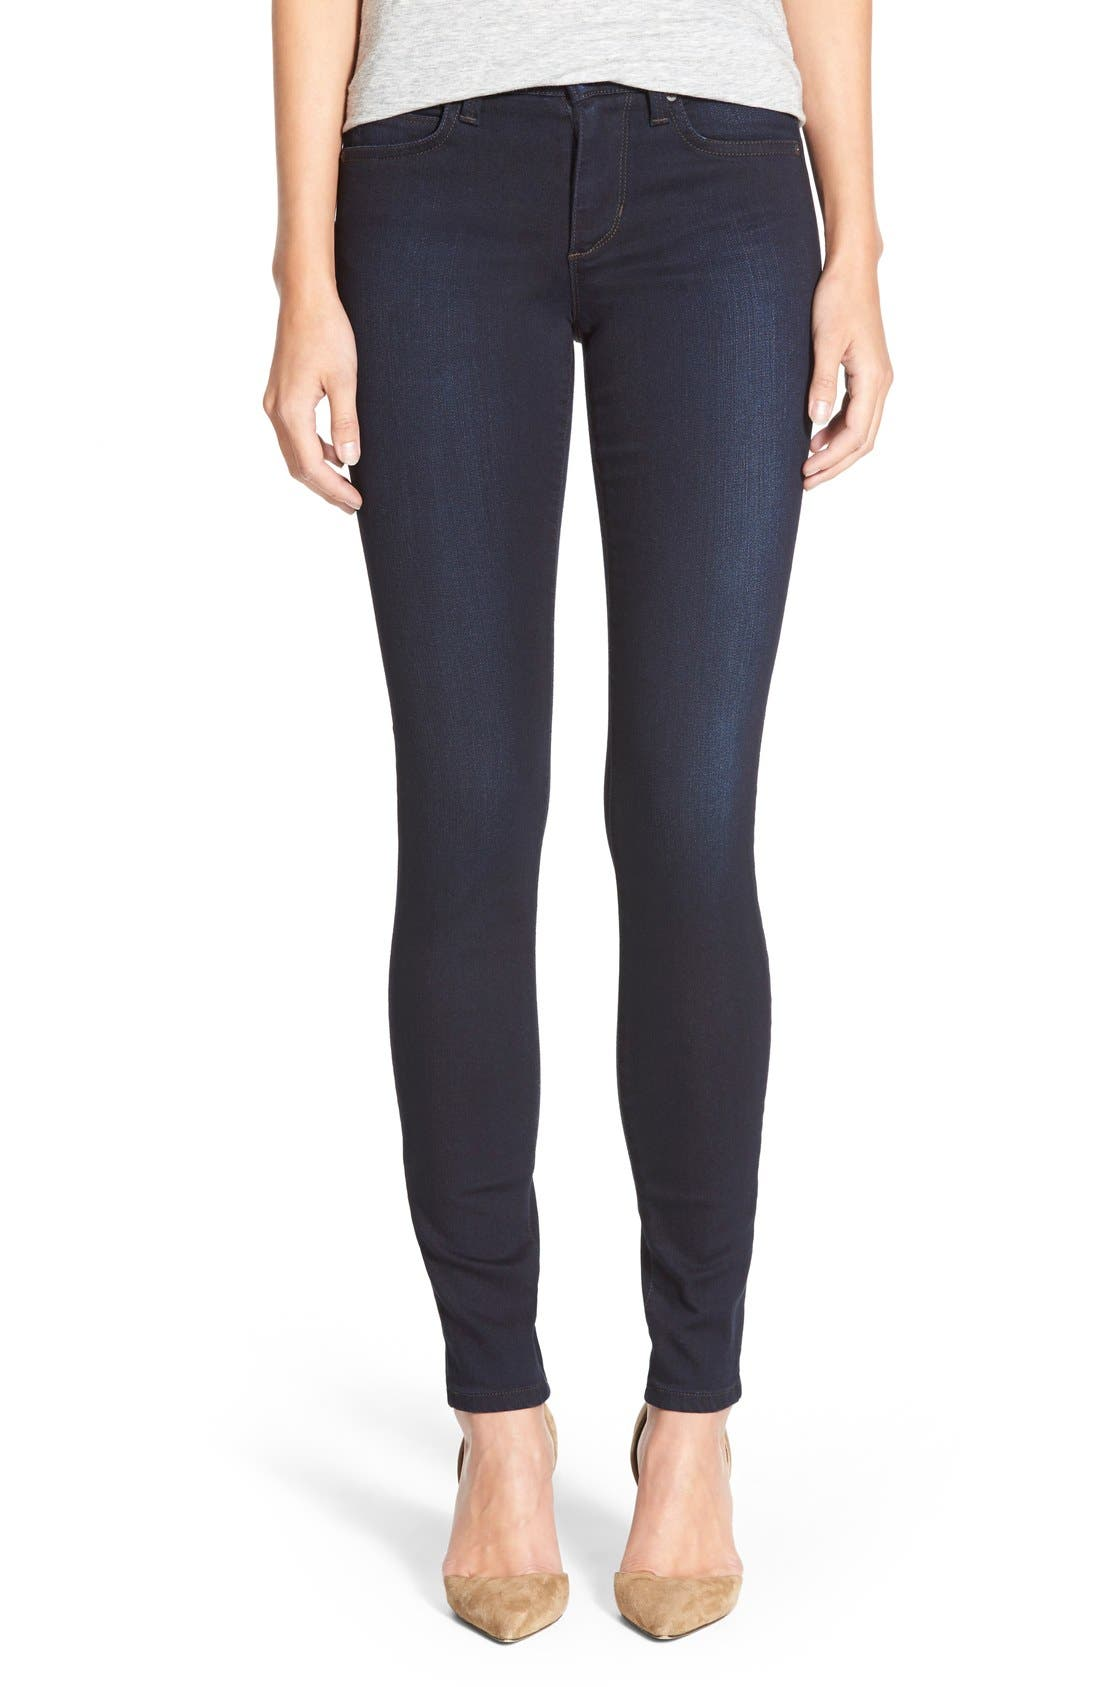 'Flawless - #Hello' Skinny Jeans,                         Main,                         color,